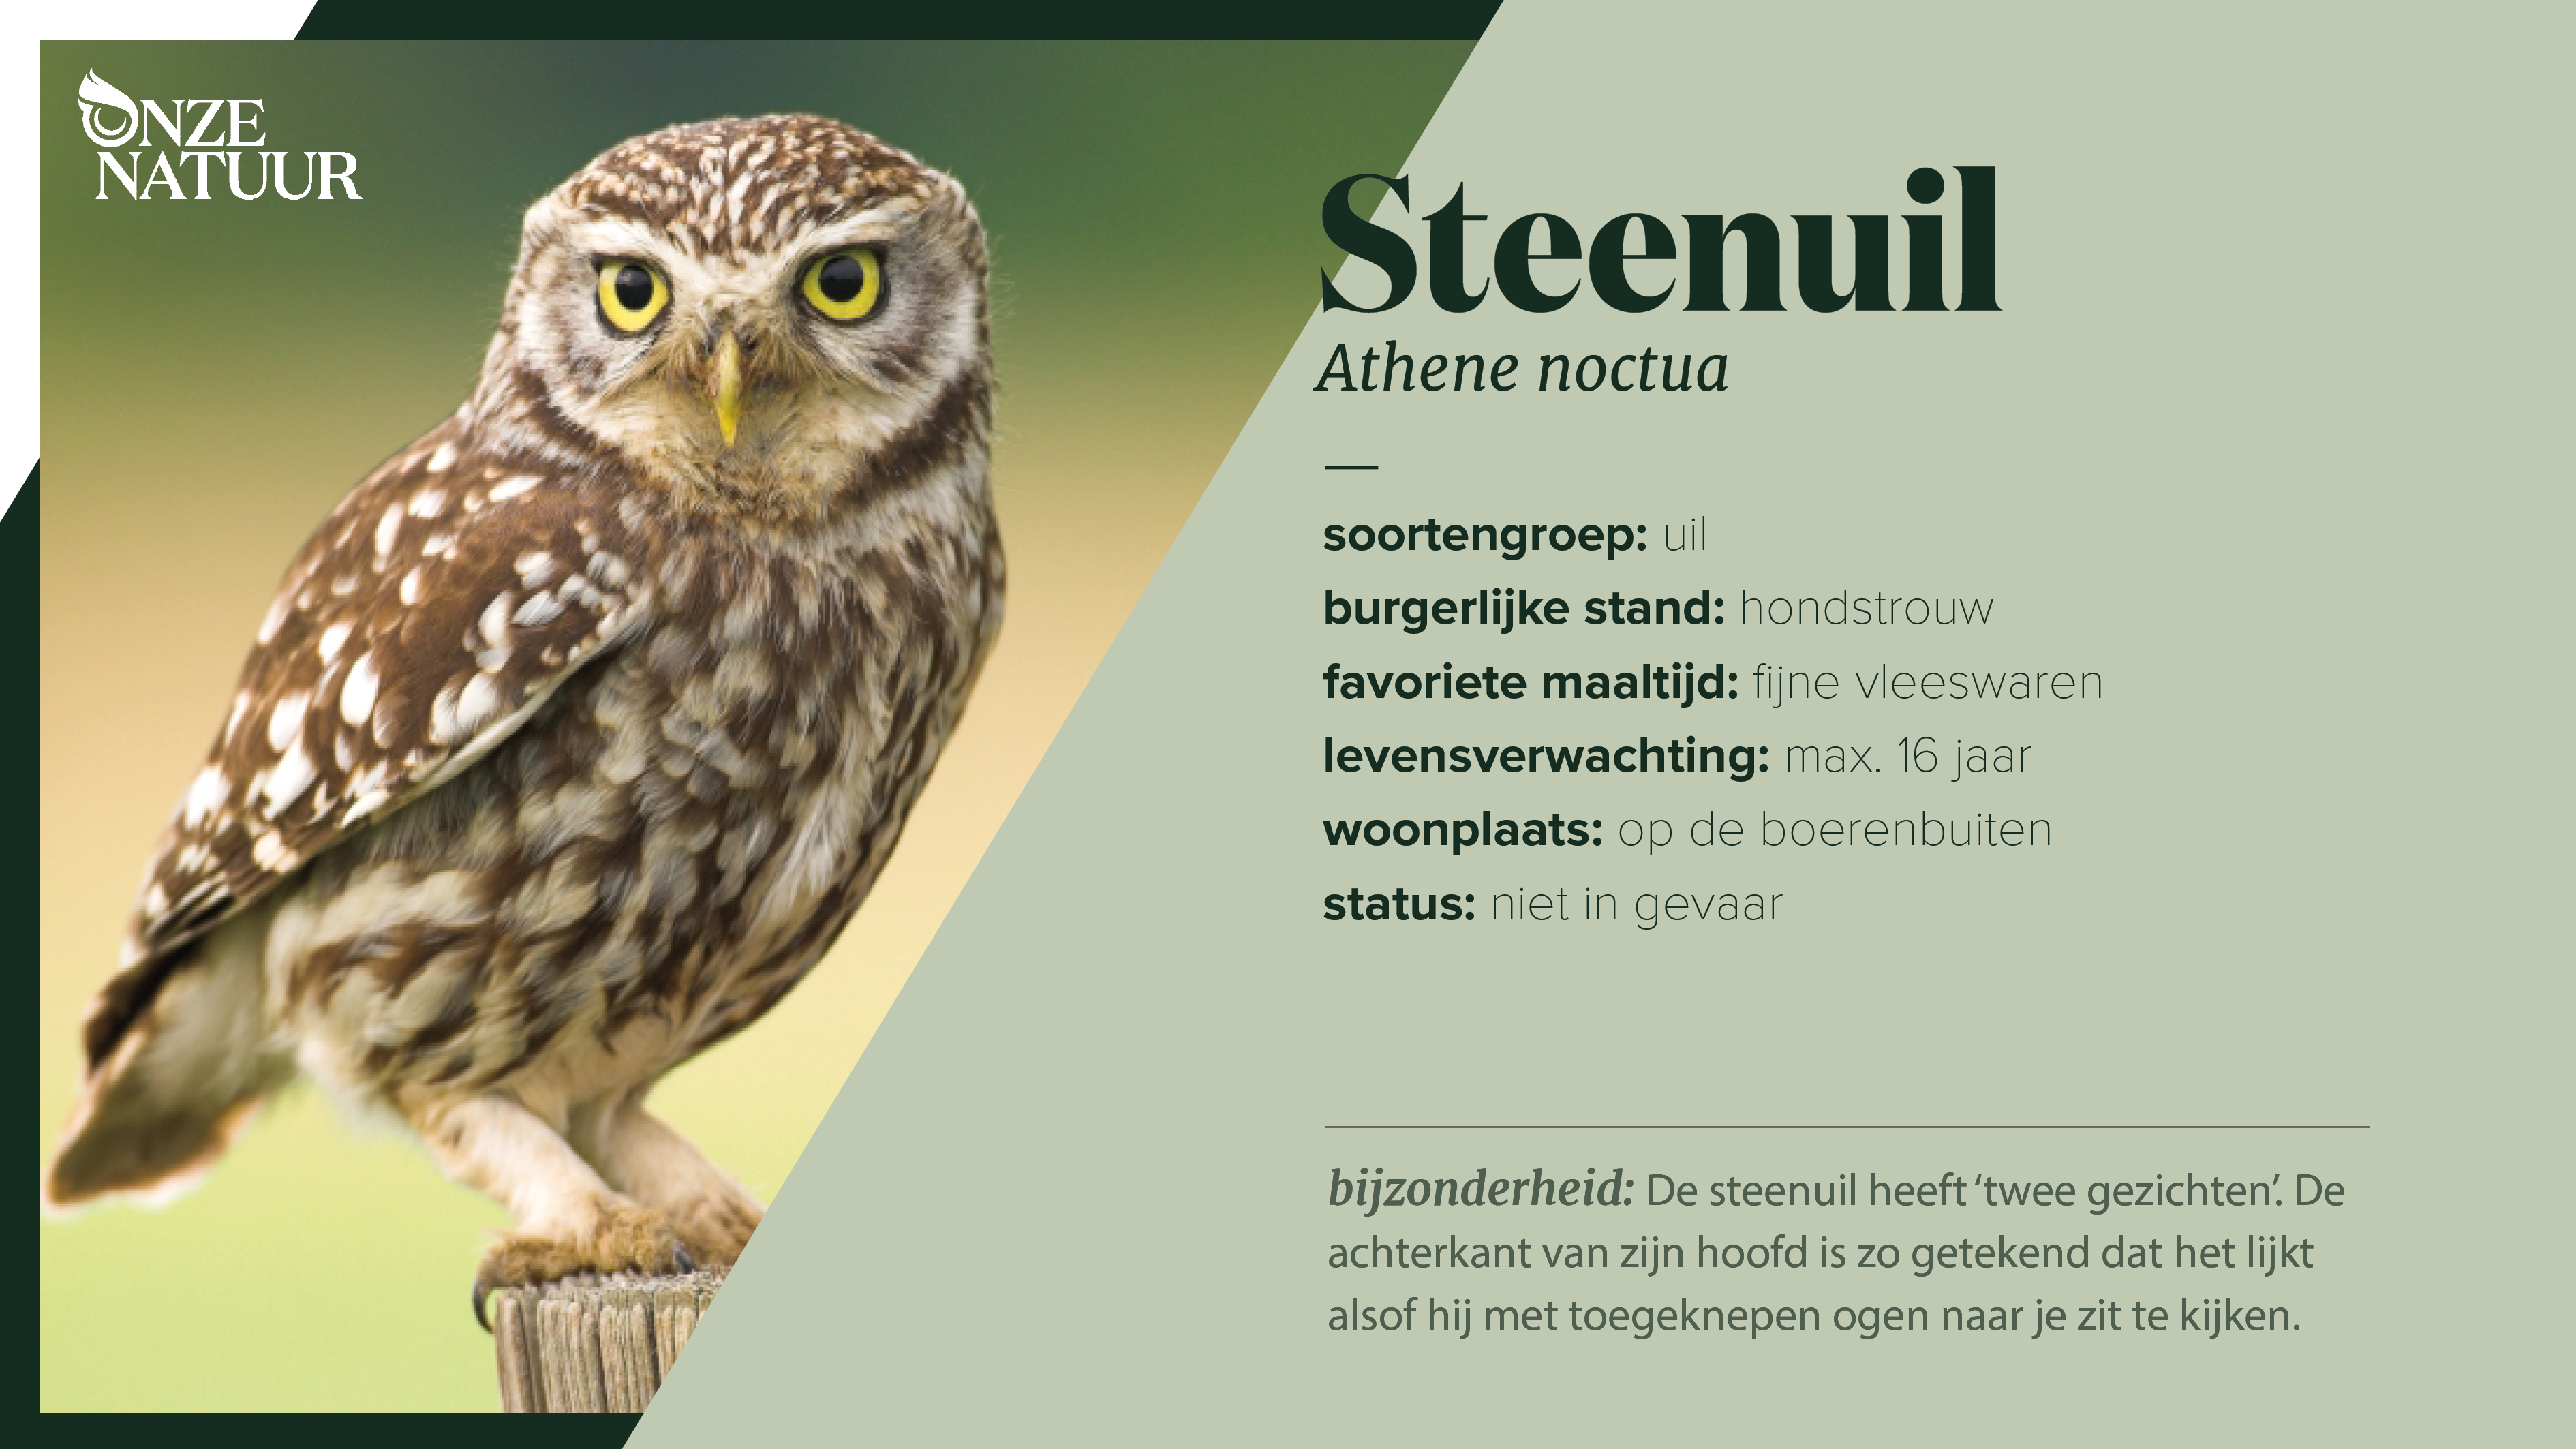 on-fiche-steenuil-nl.png